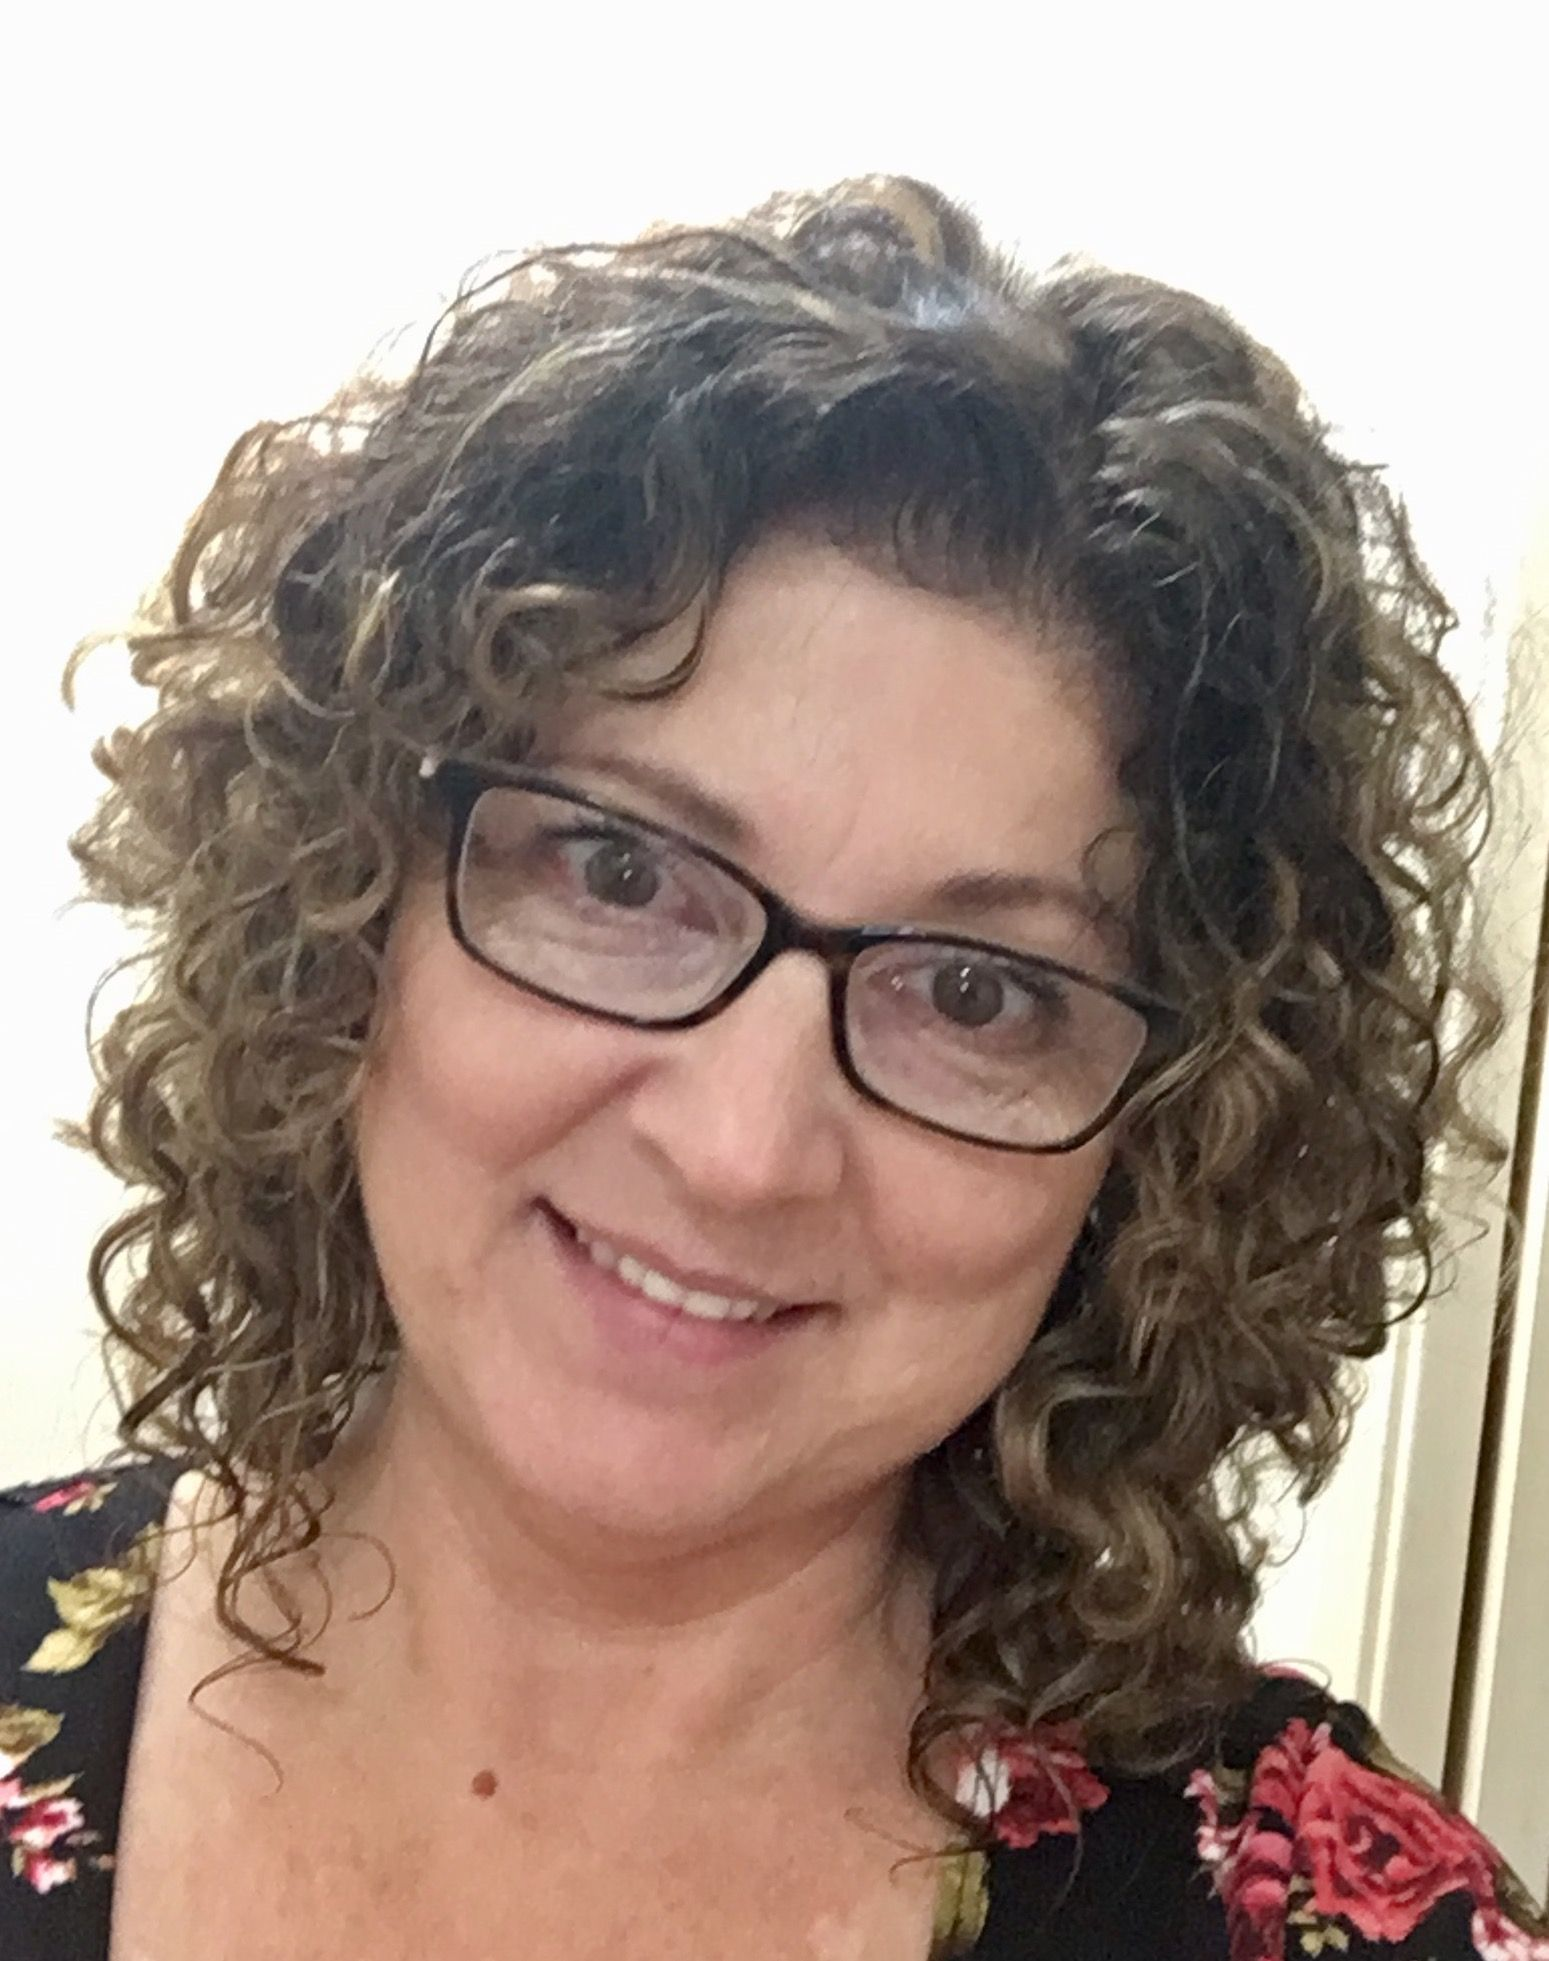 Pin By Corina On Short Curly Girl Styles Pinterest Curly Girl